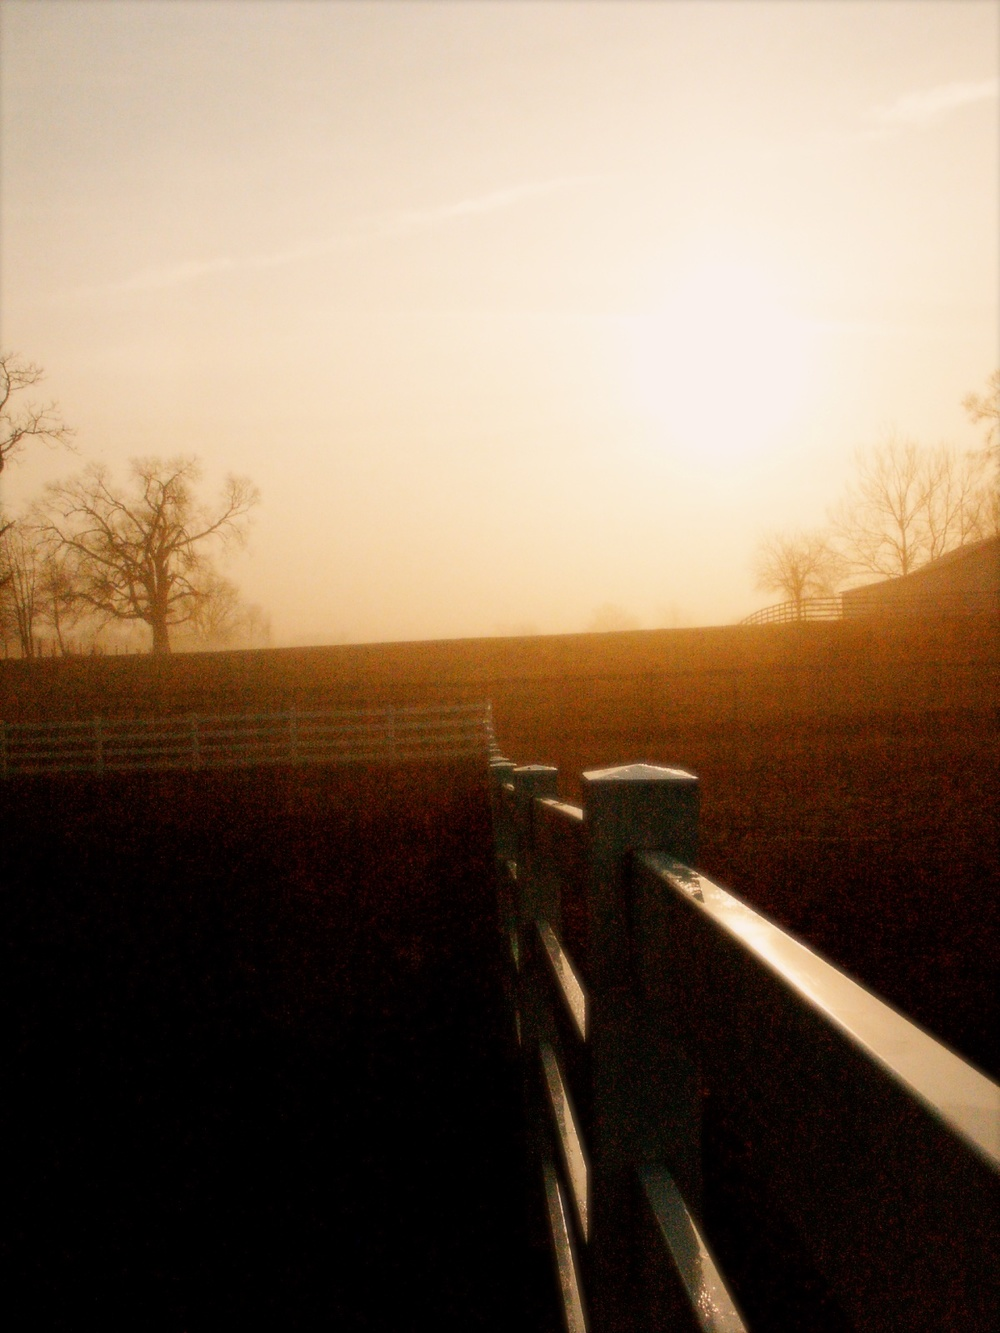 Grainy Fence, March 2003